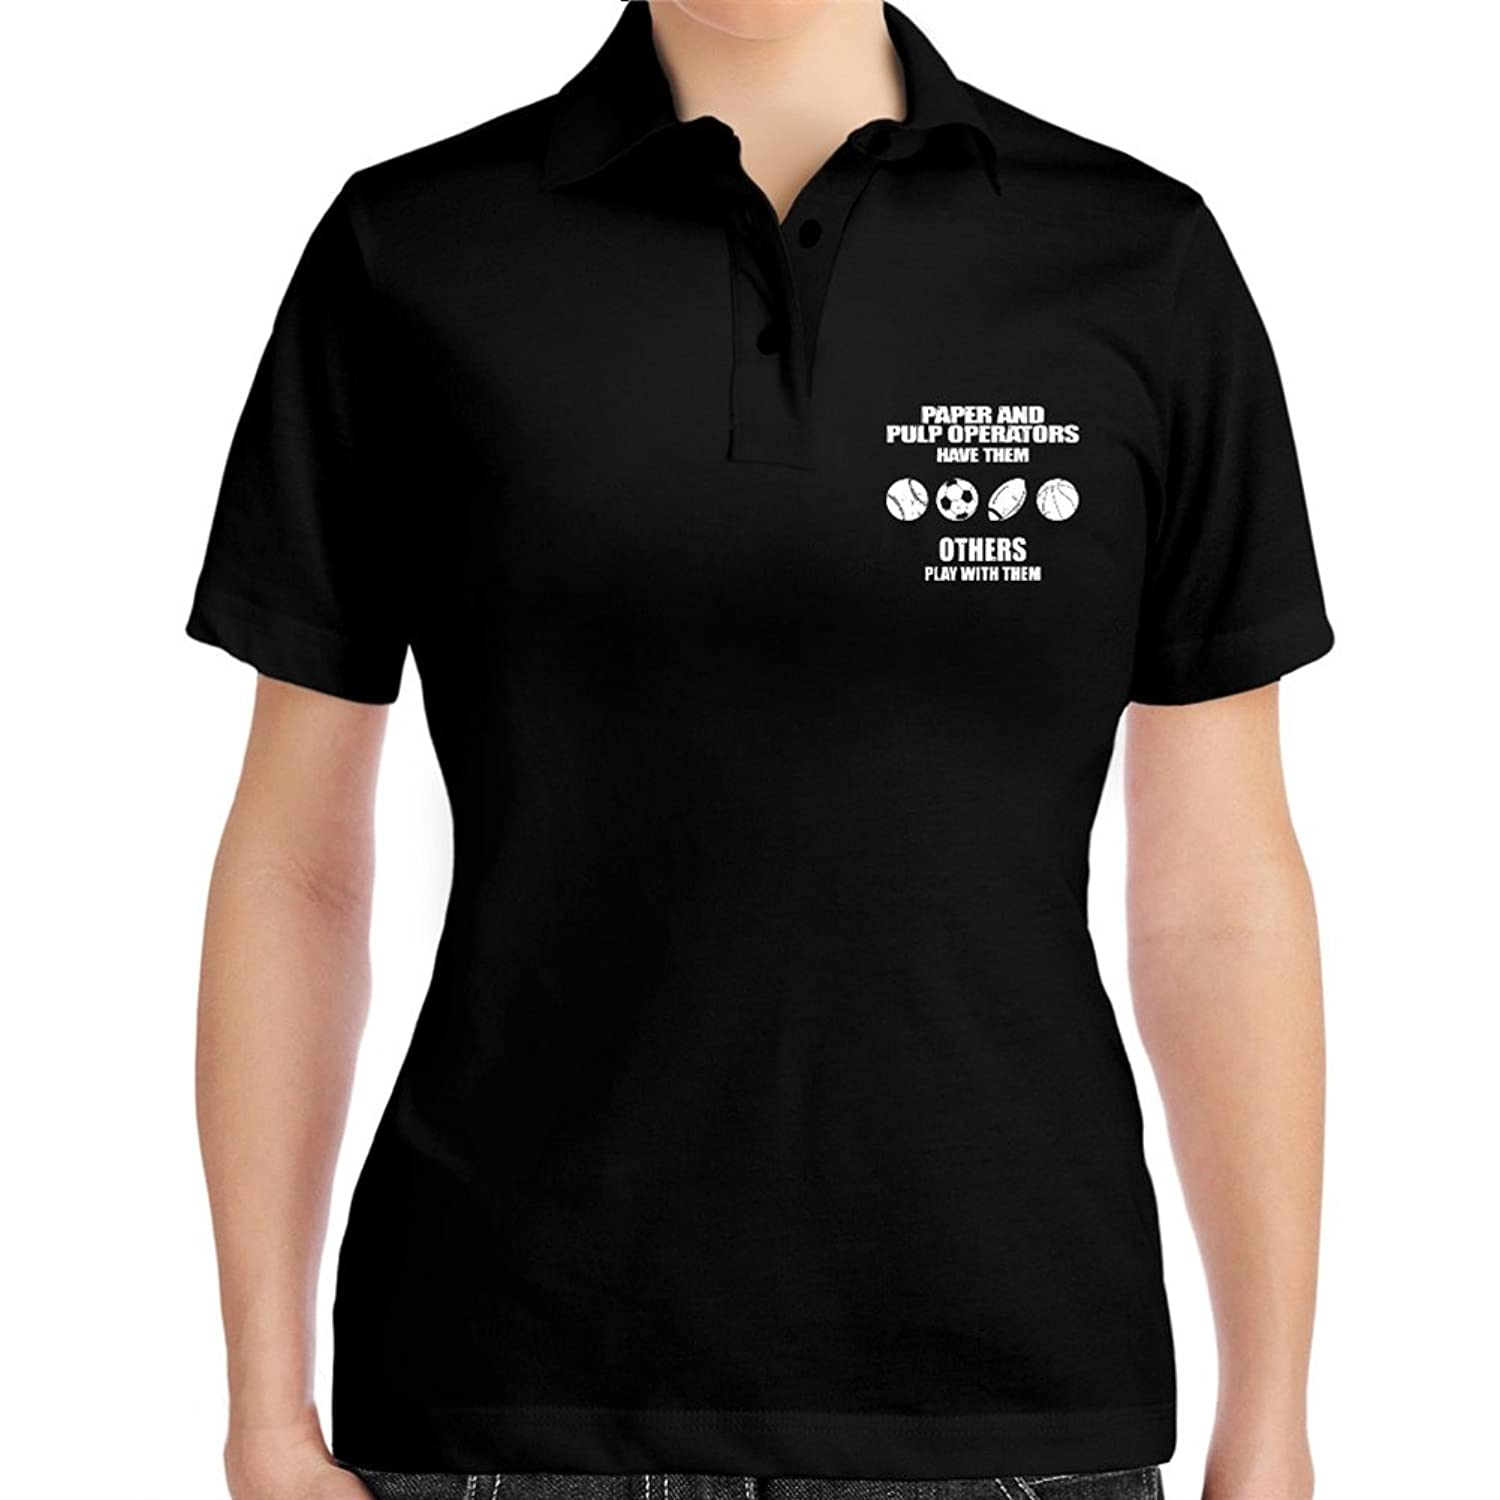 Paper And Pulp Operator have them others play with them Women Polo Shirt